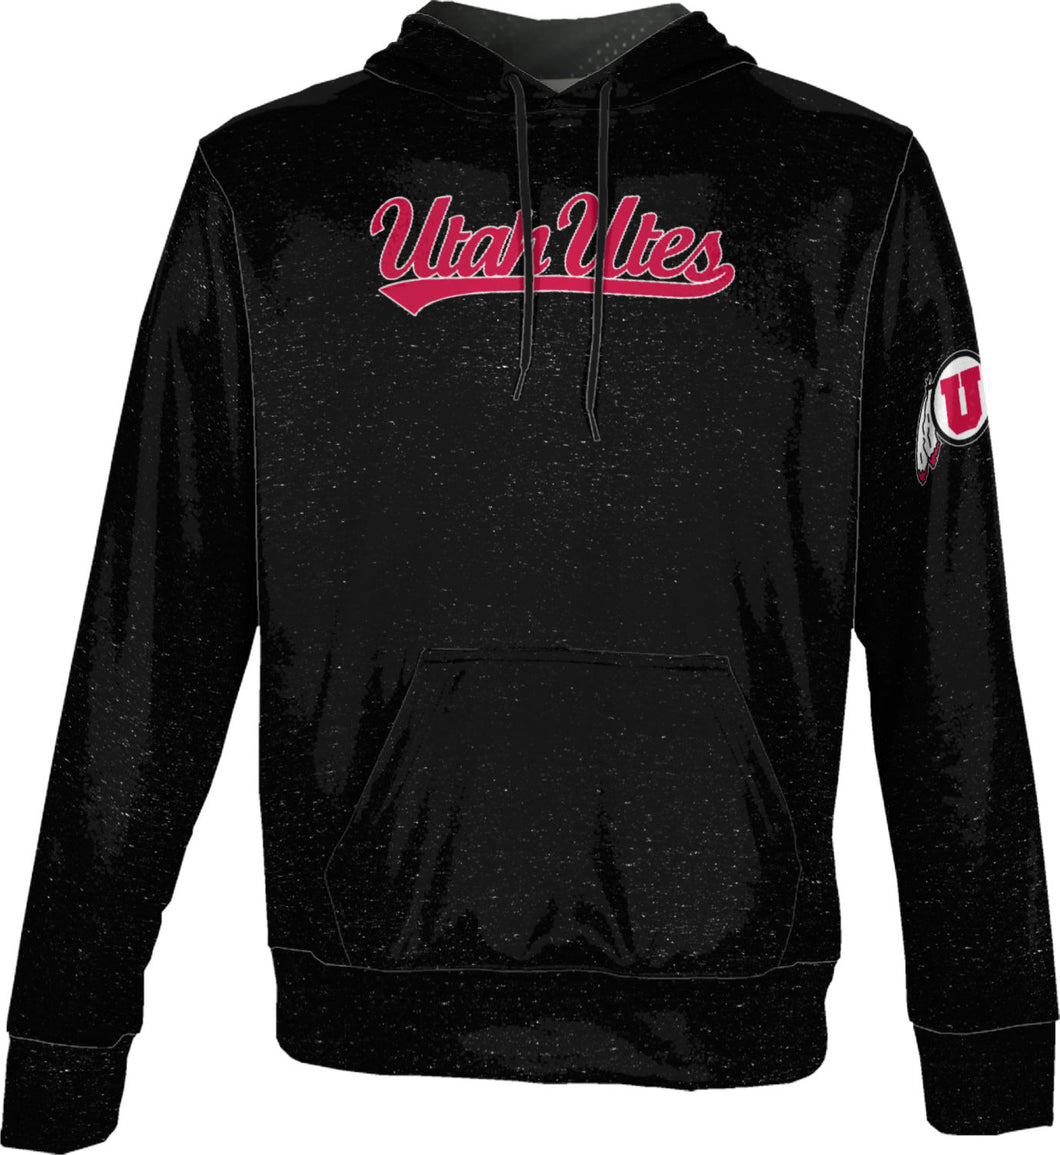 University of Utah Men's Pullover Hoodie - Heathered